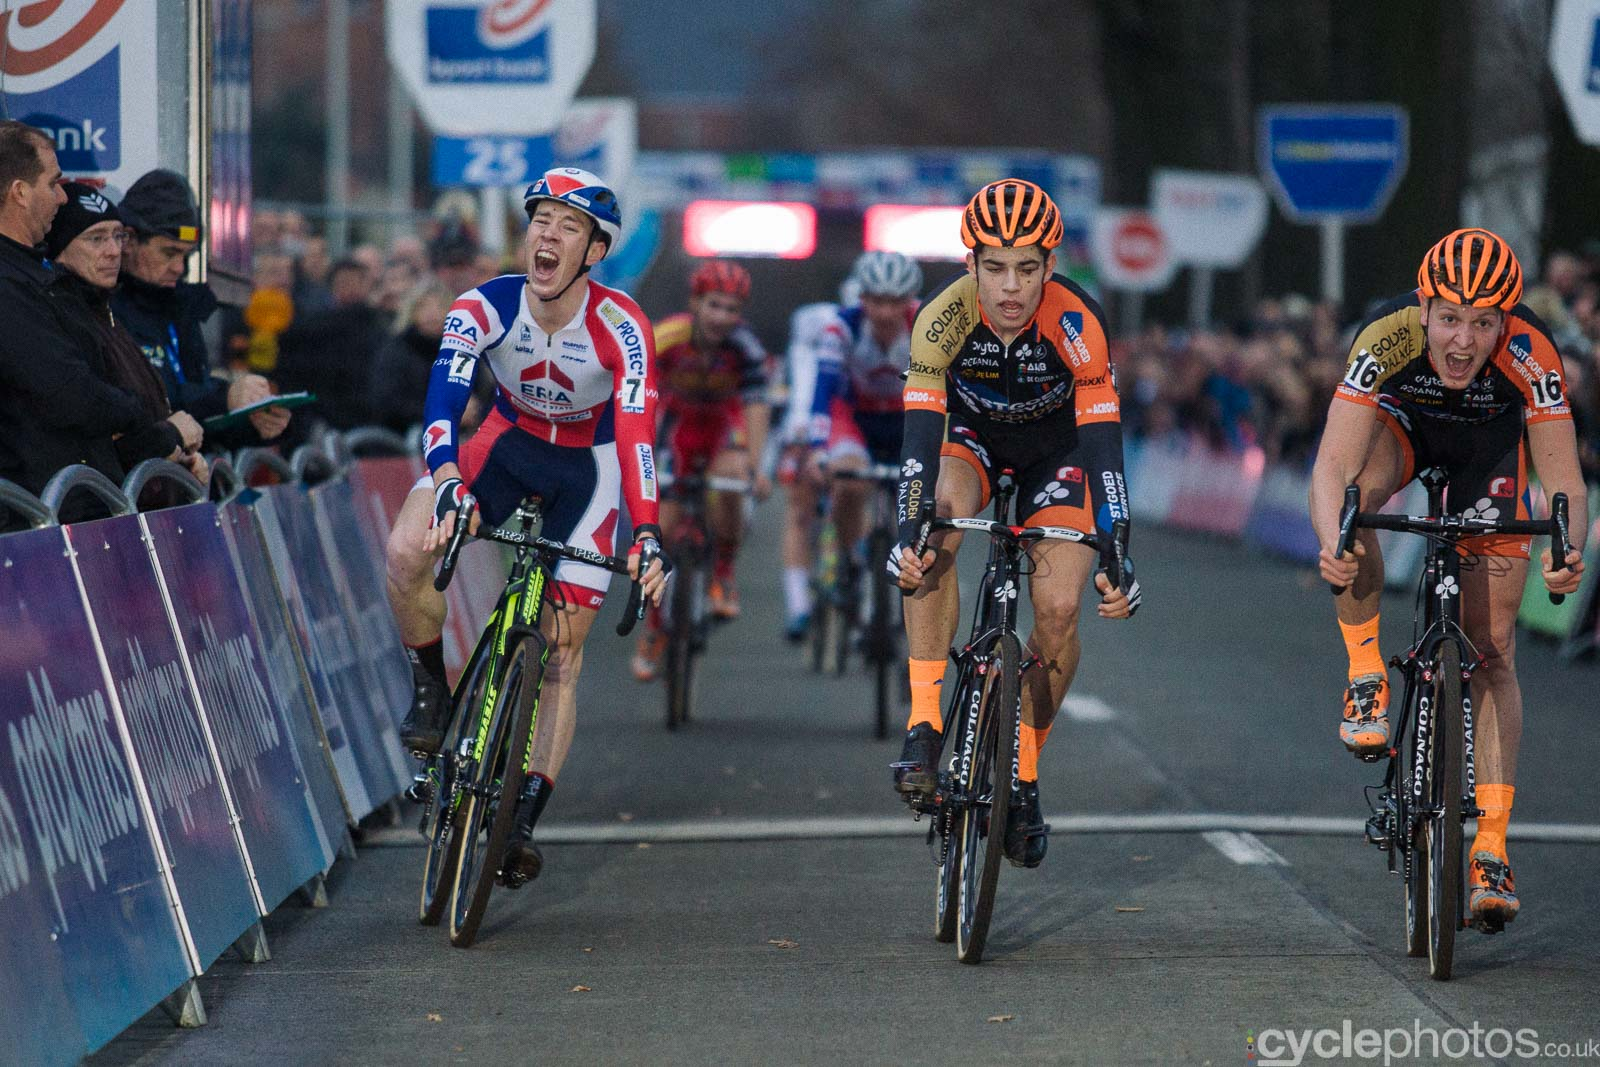 2015-cyclephotos-cyclocross-azencross-155731-sprint-finish